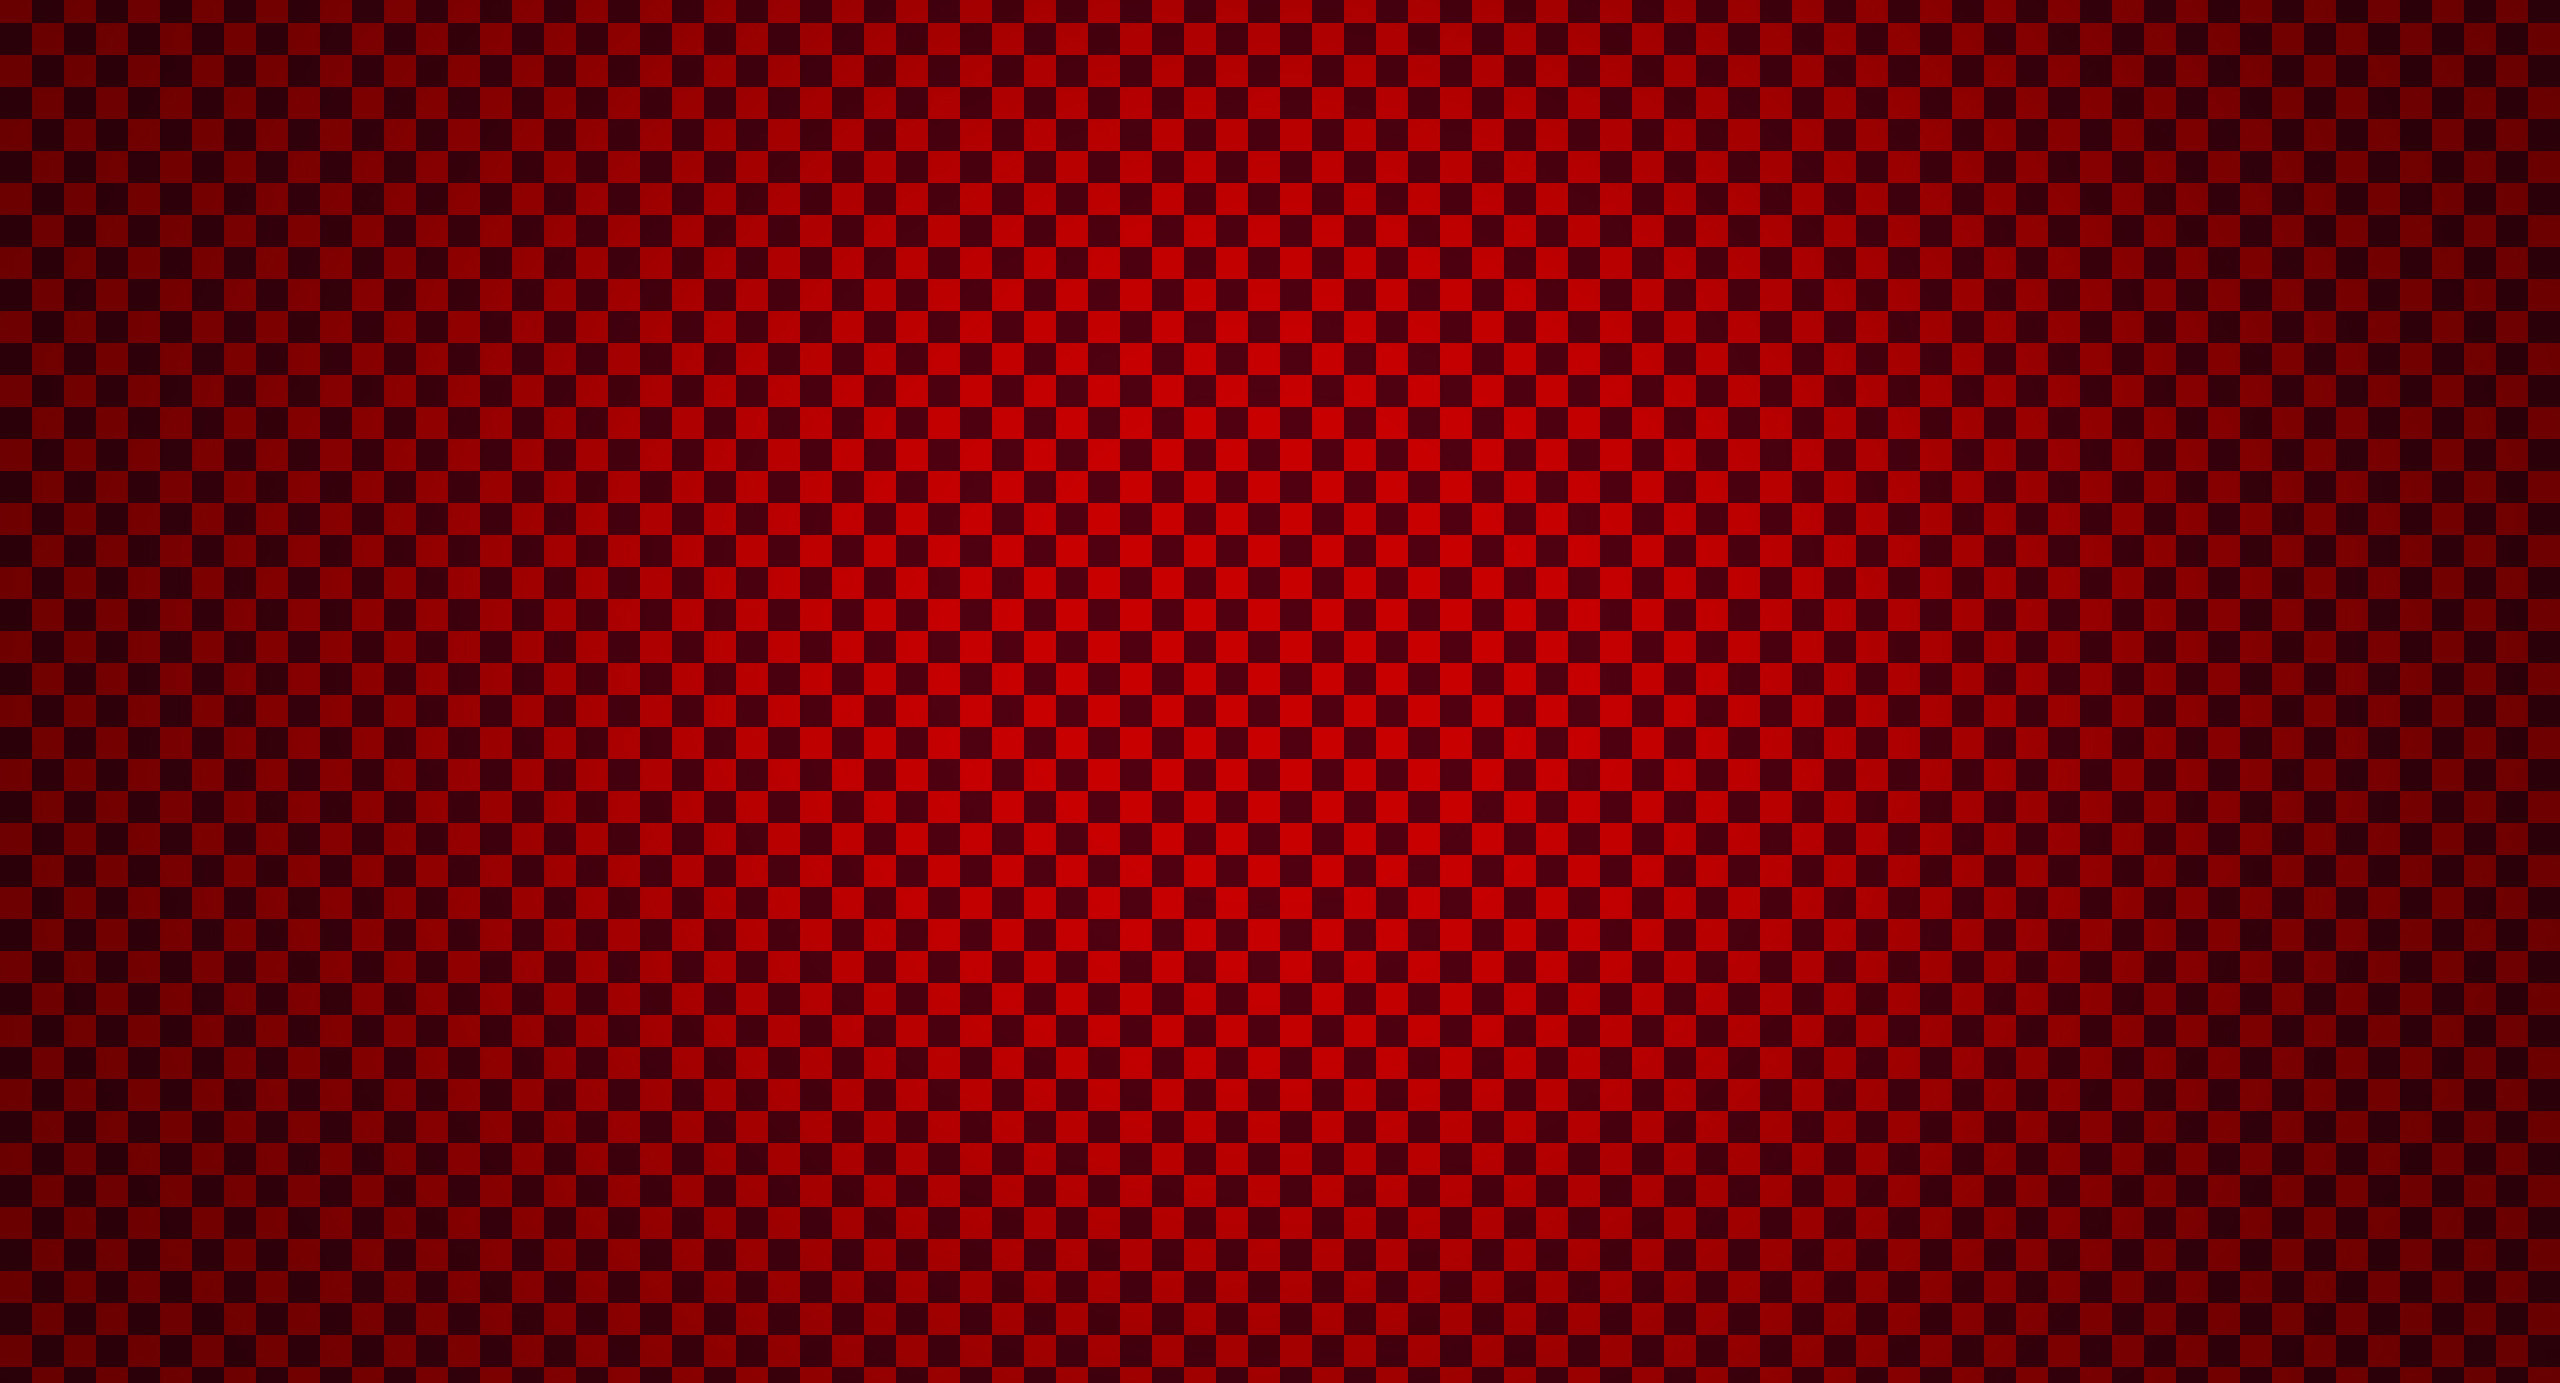 Download 2560×1440 Android Logo On A Checkered Background Wallpaper